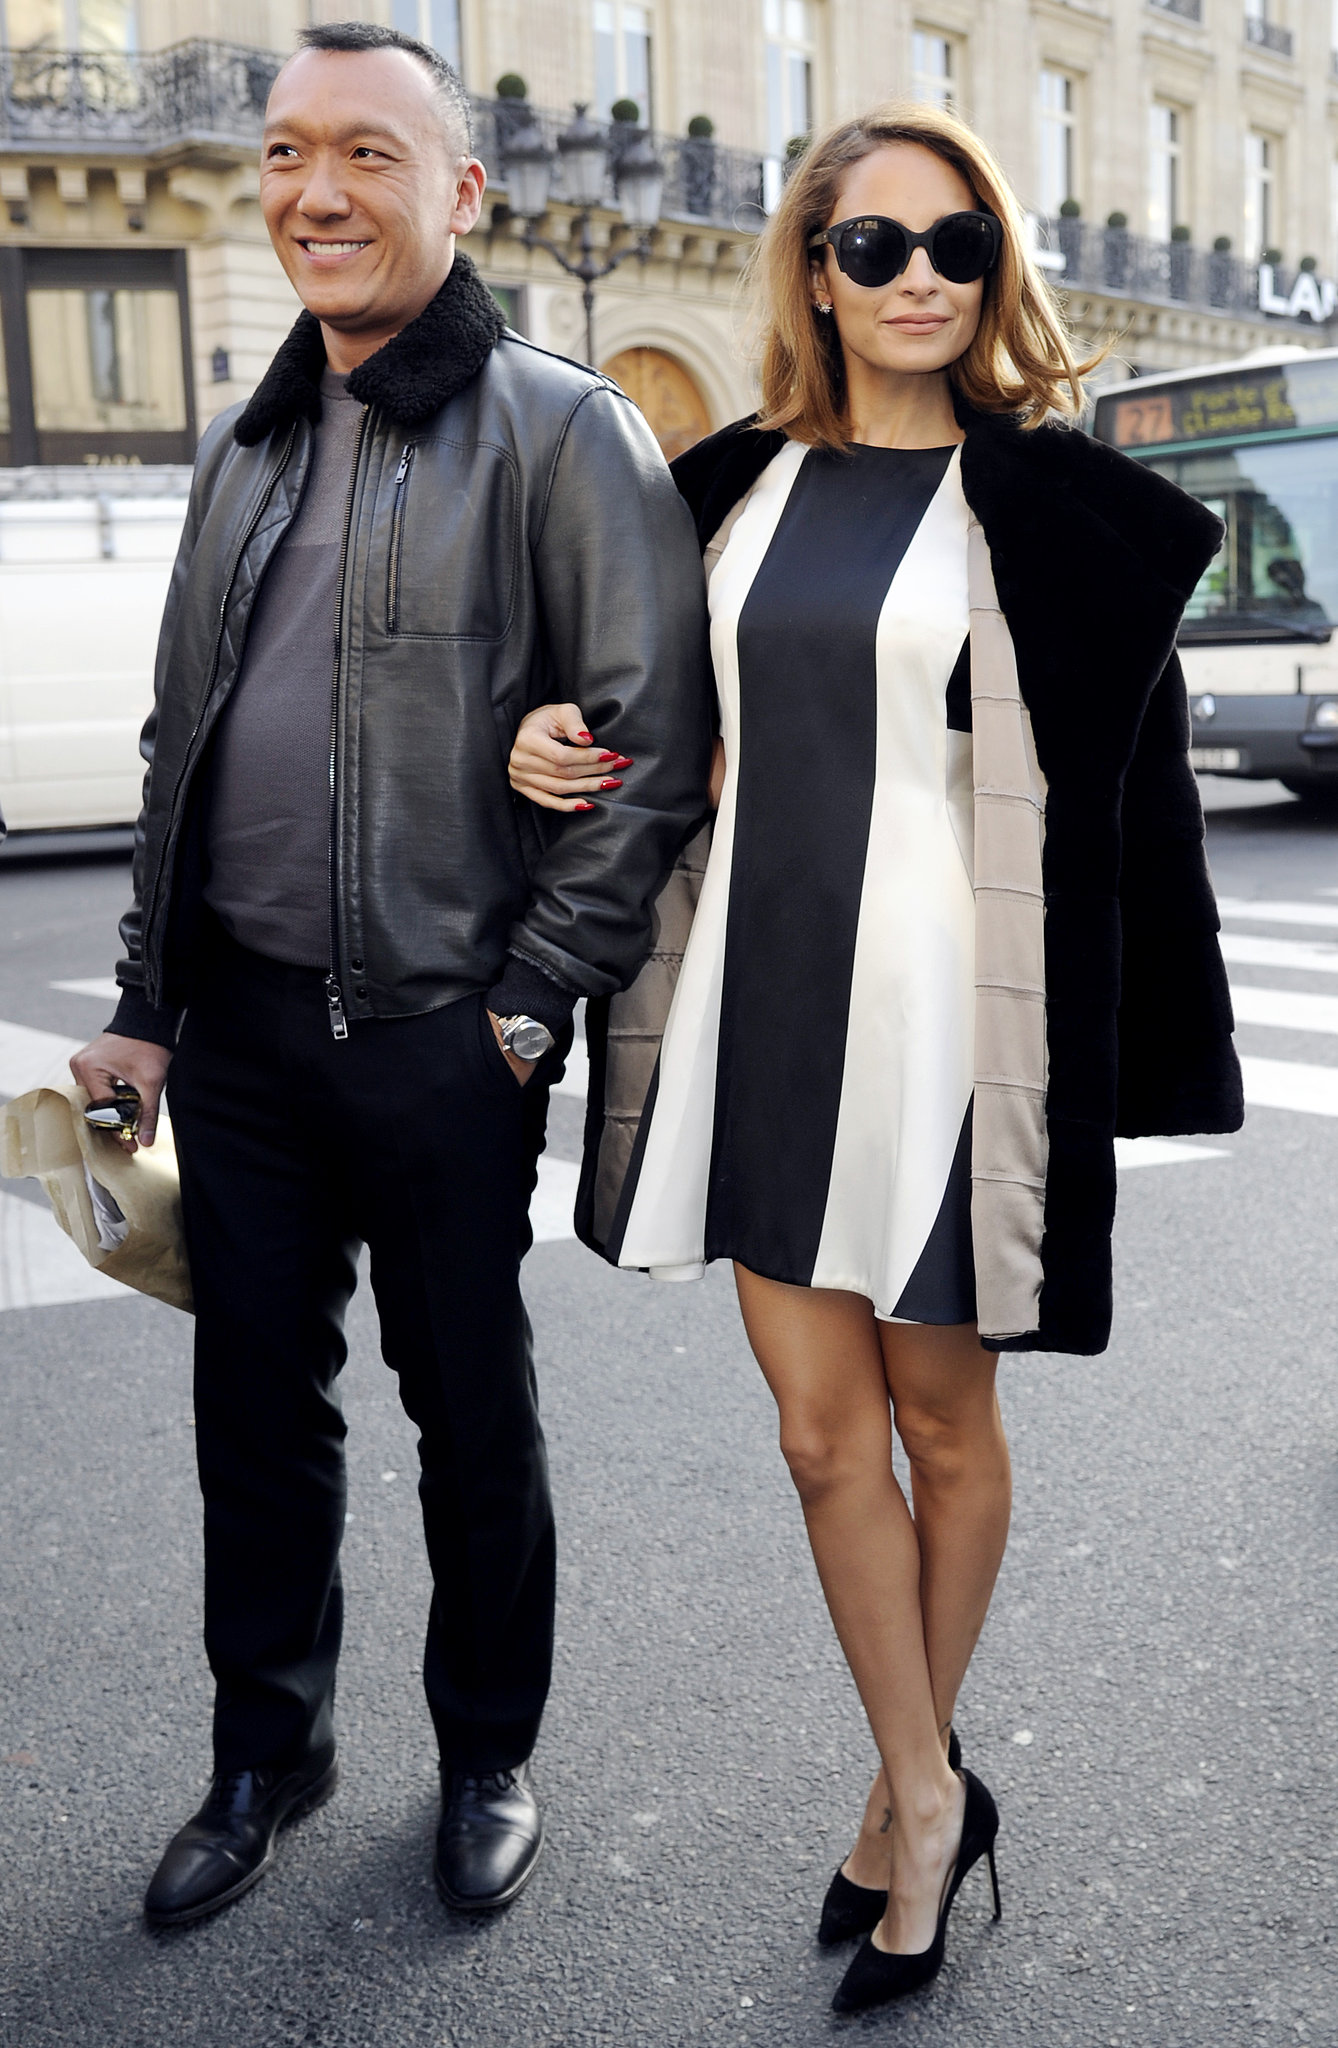 How chic did Nicole Richie look on the arm of Elle creative director Joe Zee? The duo arrived for the Stella McCartney show during Paris Fashion Week together in March 2013.